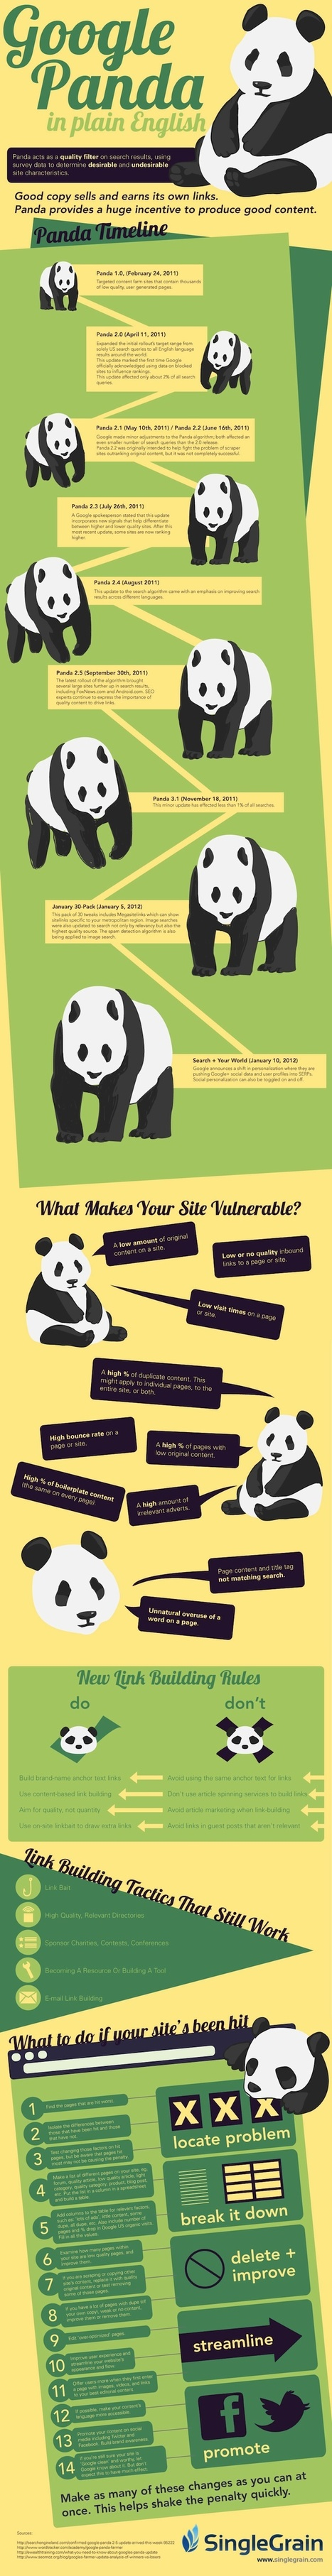 Google Panda in Plain English (Infographic) - Single Grain | SocialMediaDesign | Scoop.it